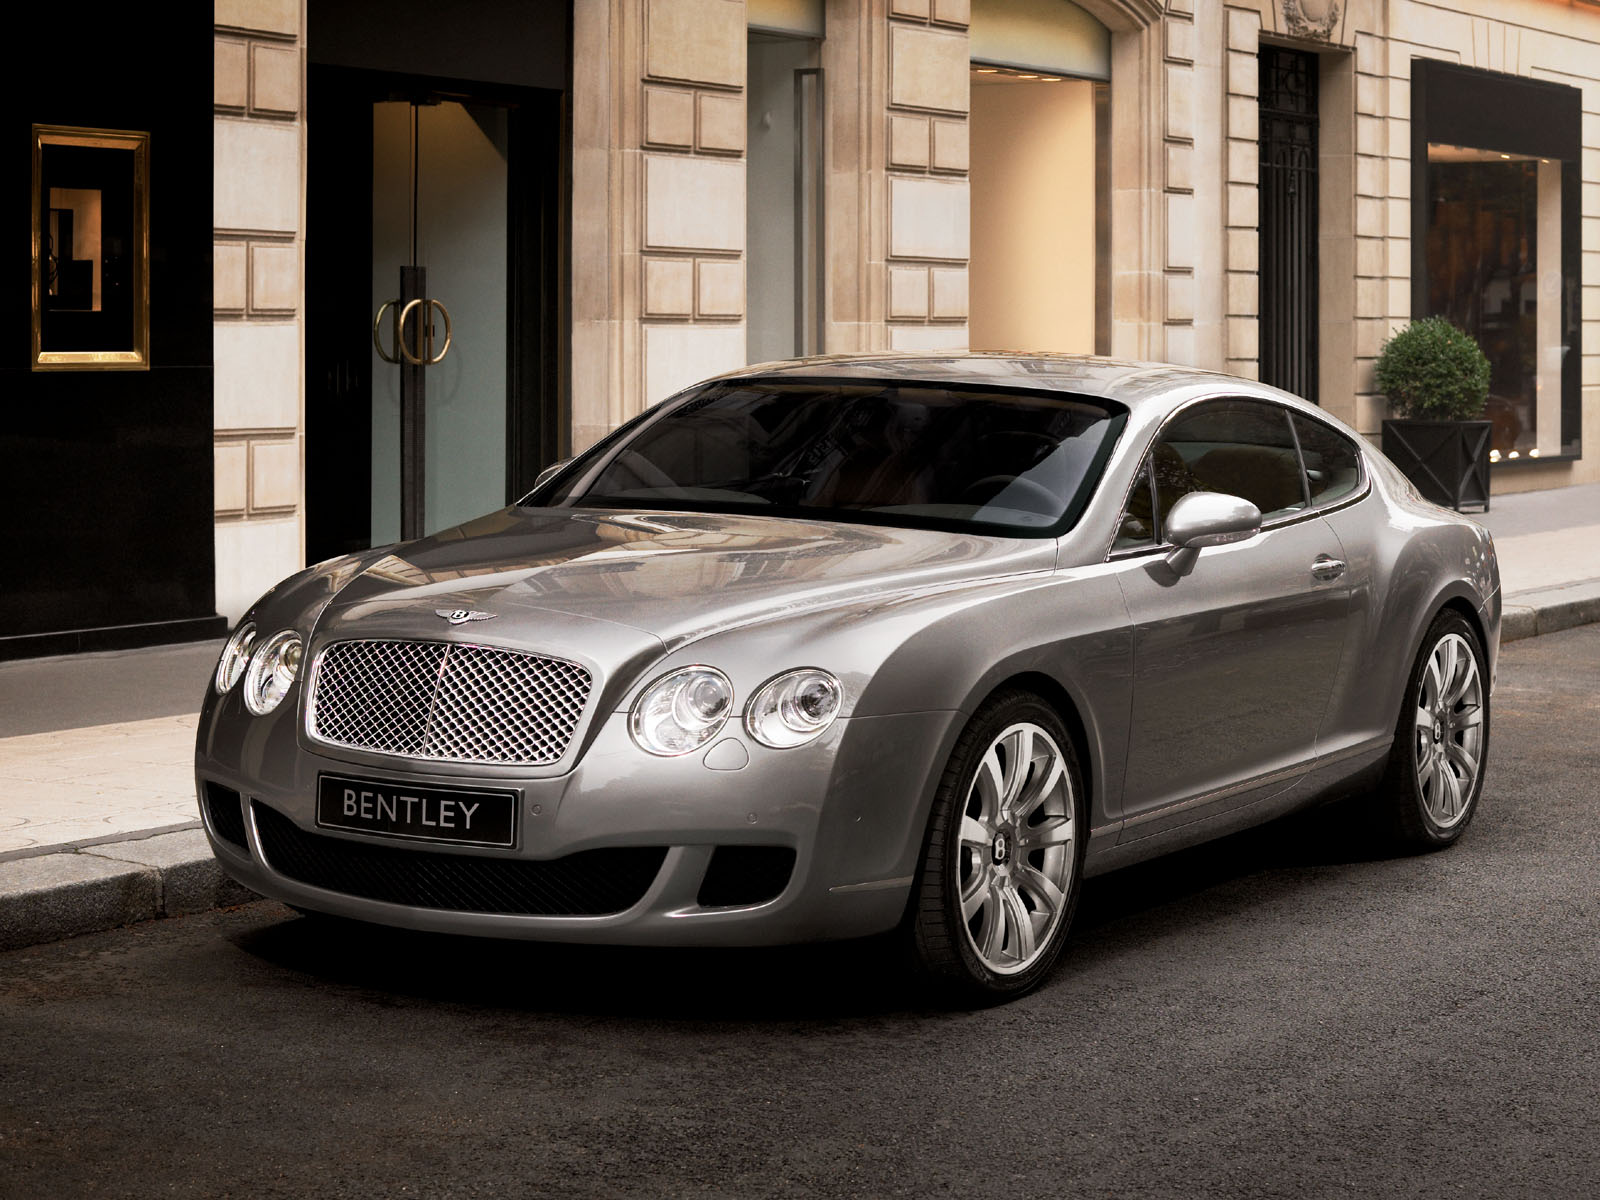 2008 Bentley Continental Gt Speed #3